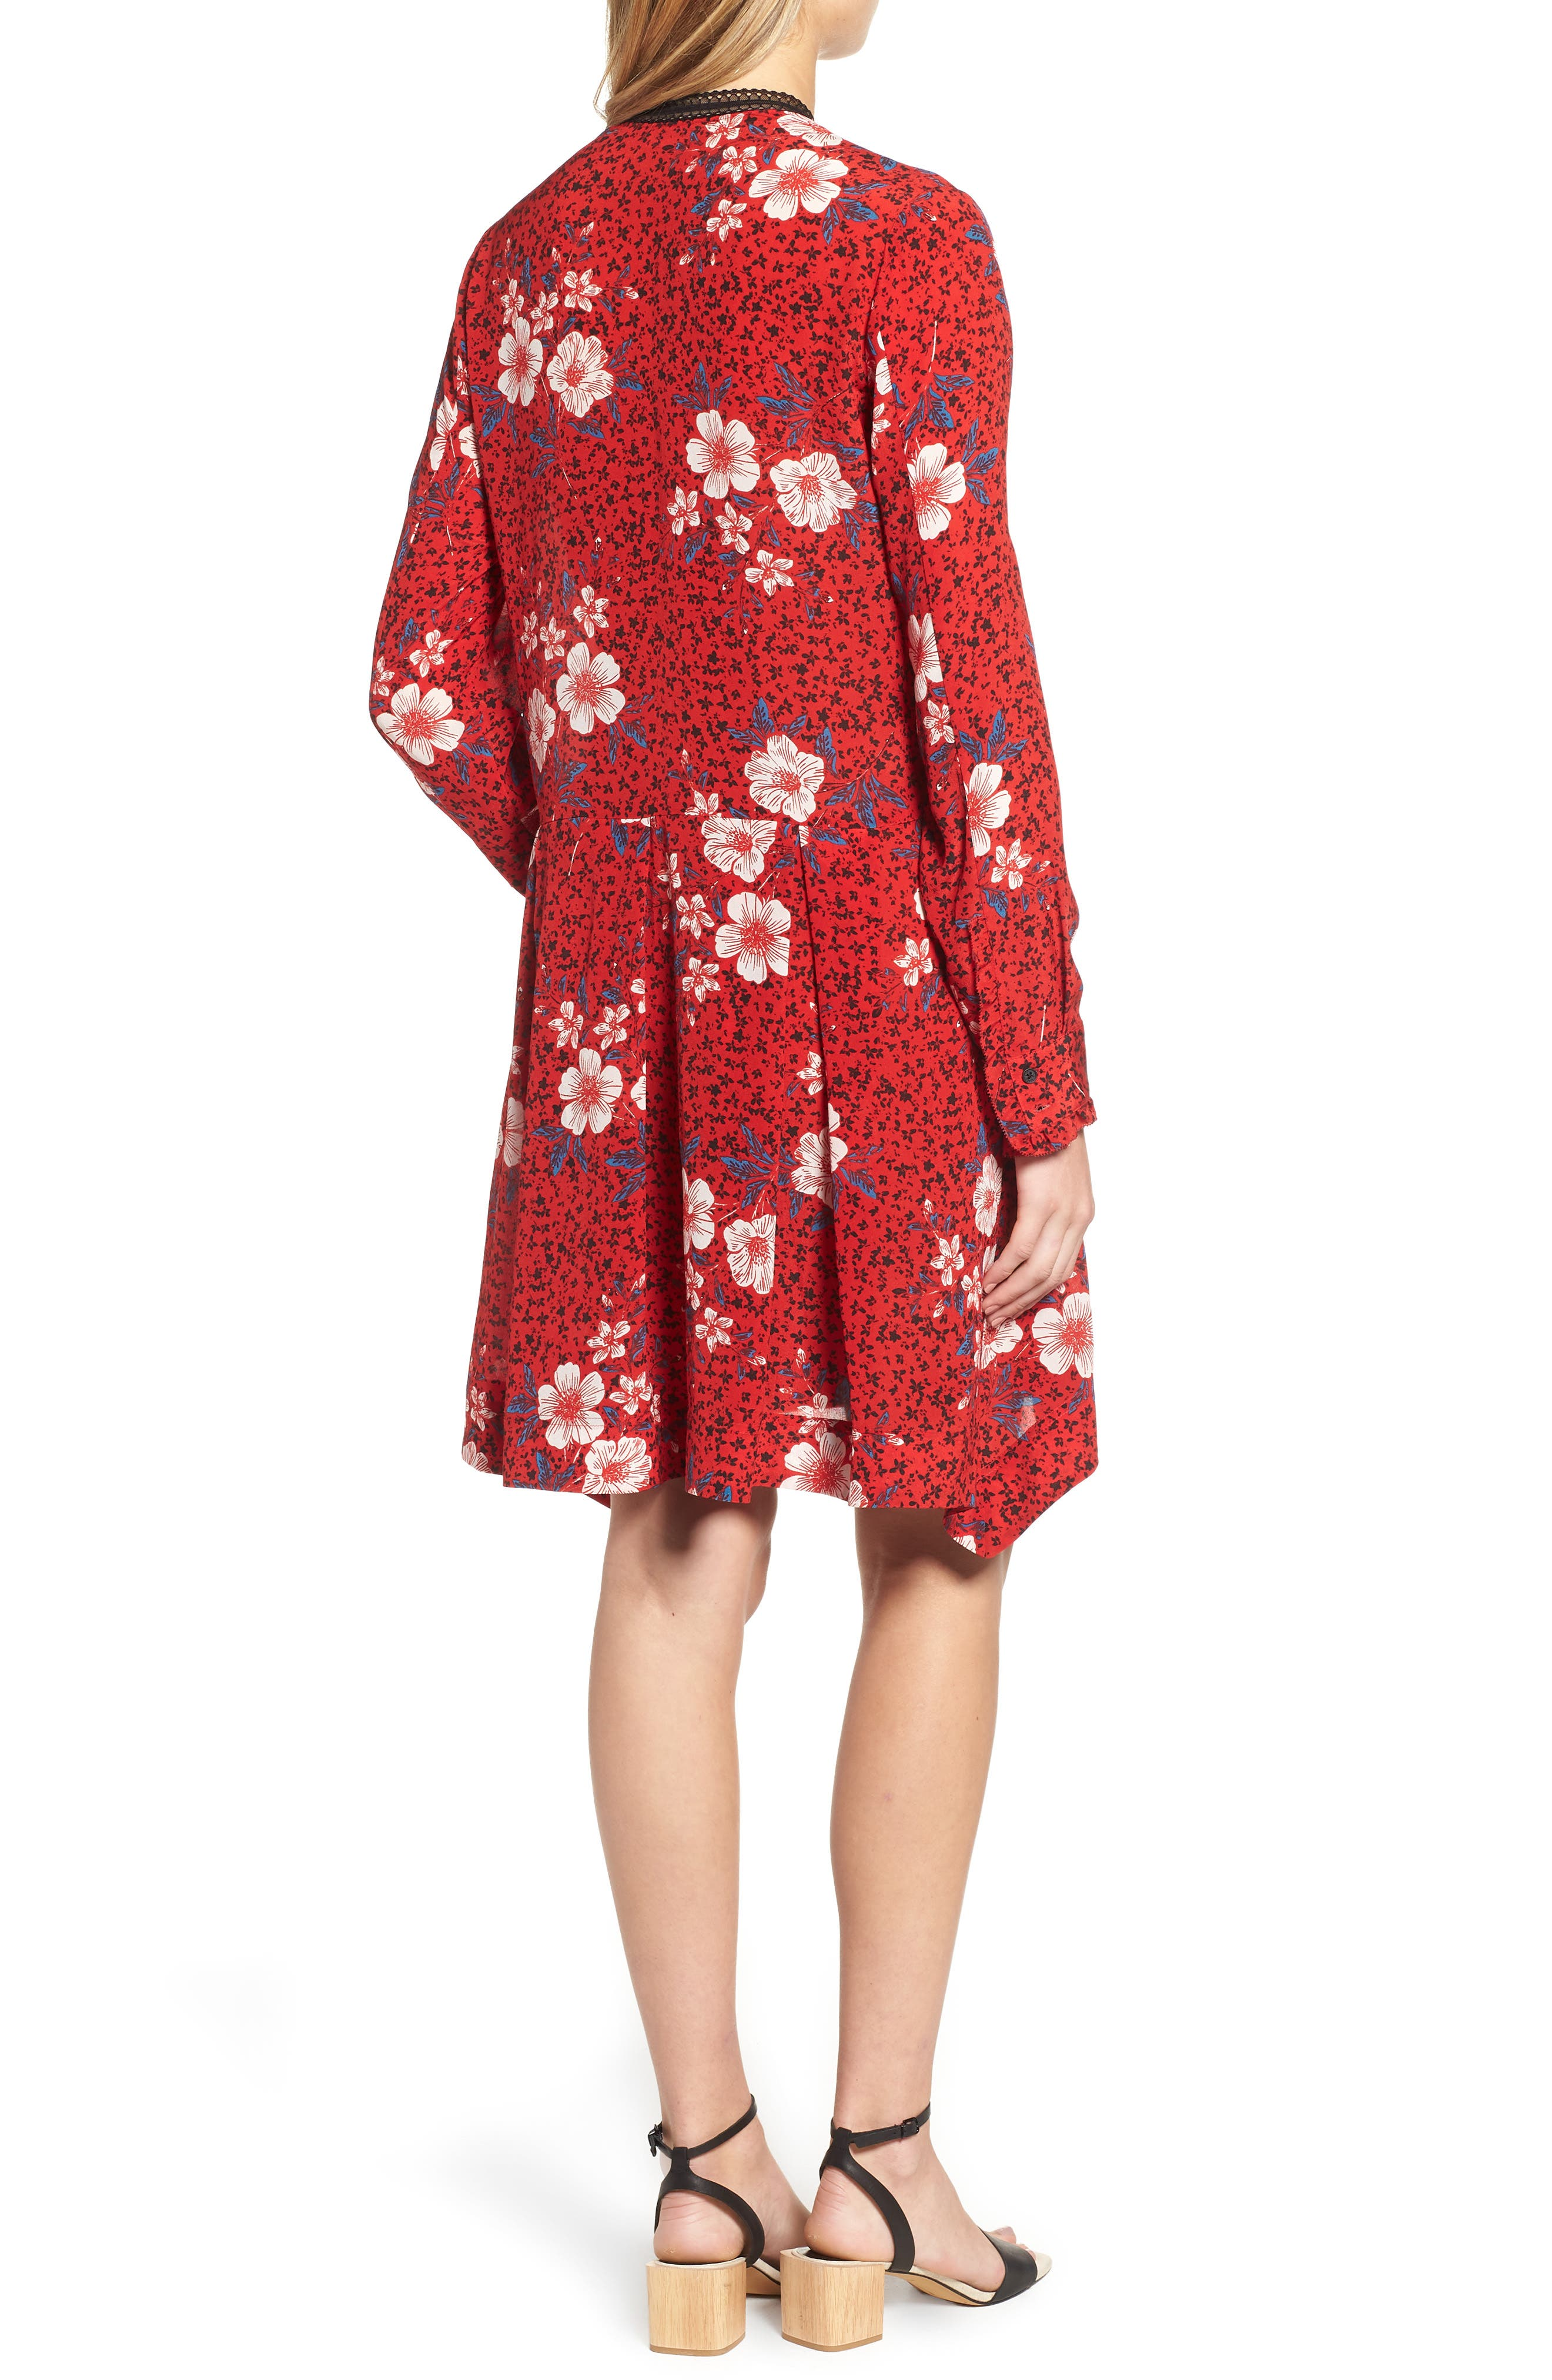 ZADIG & VOLTAIRE,                             Ruti Pensee Double Floral Silk Dress,                             Alternate thumbnail 2, color,                             648